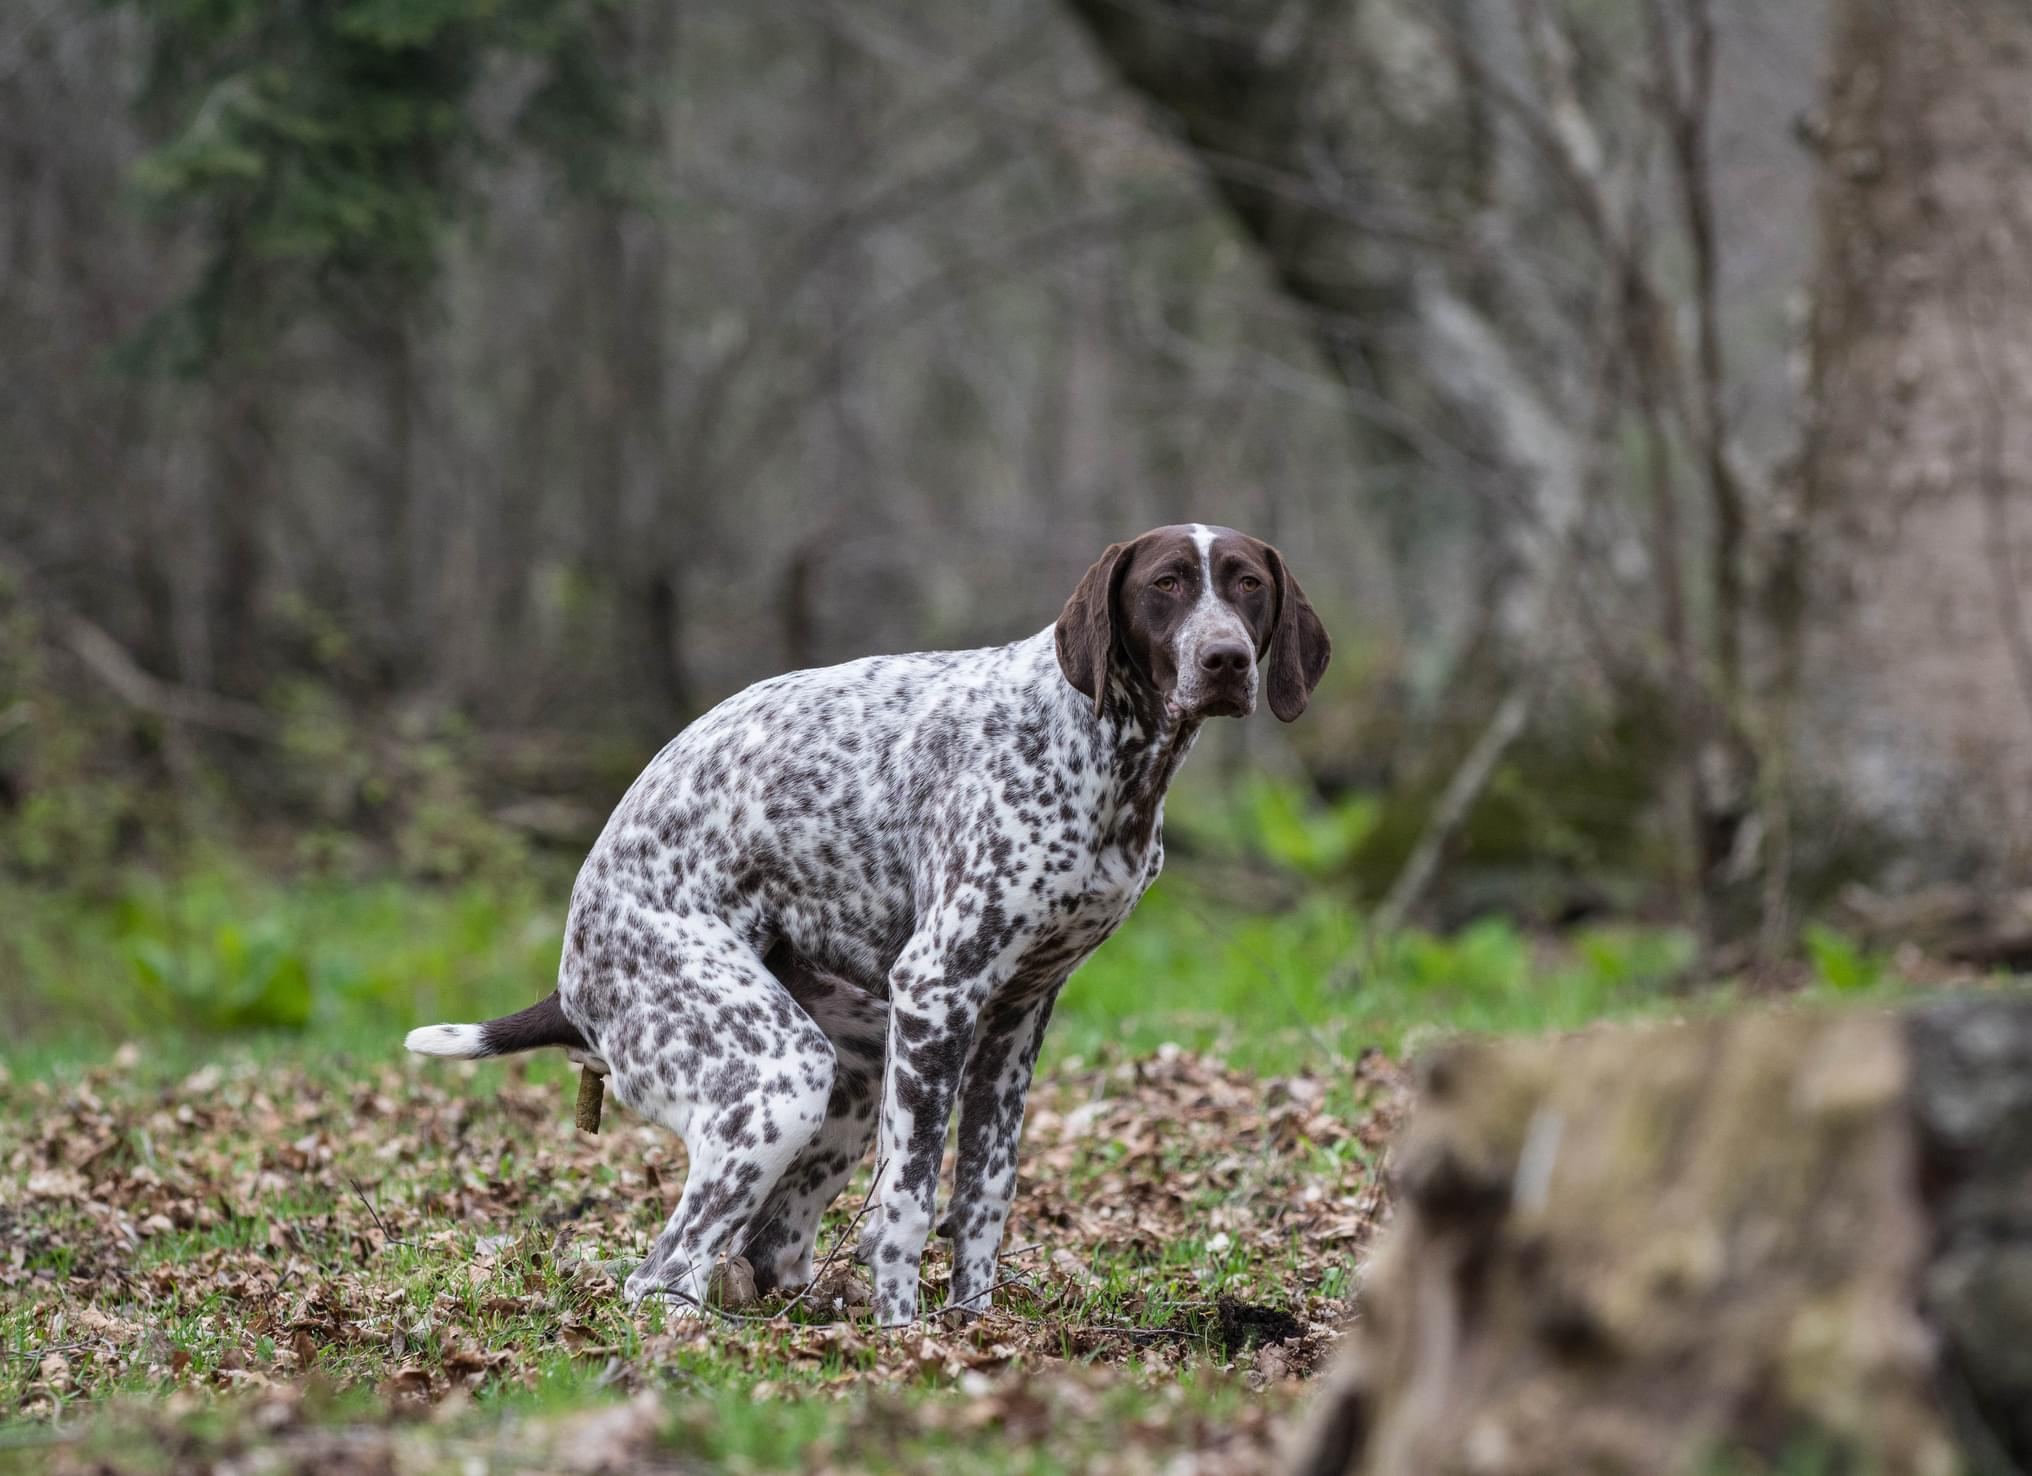 50 Shades of Dog Poop: How Dog Food Affects